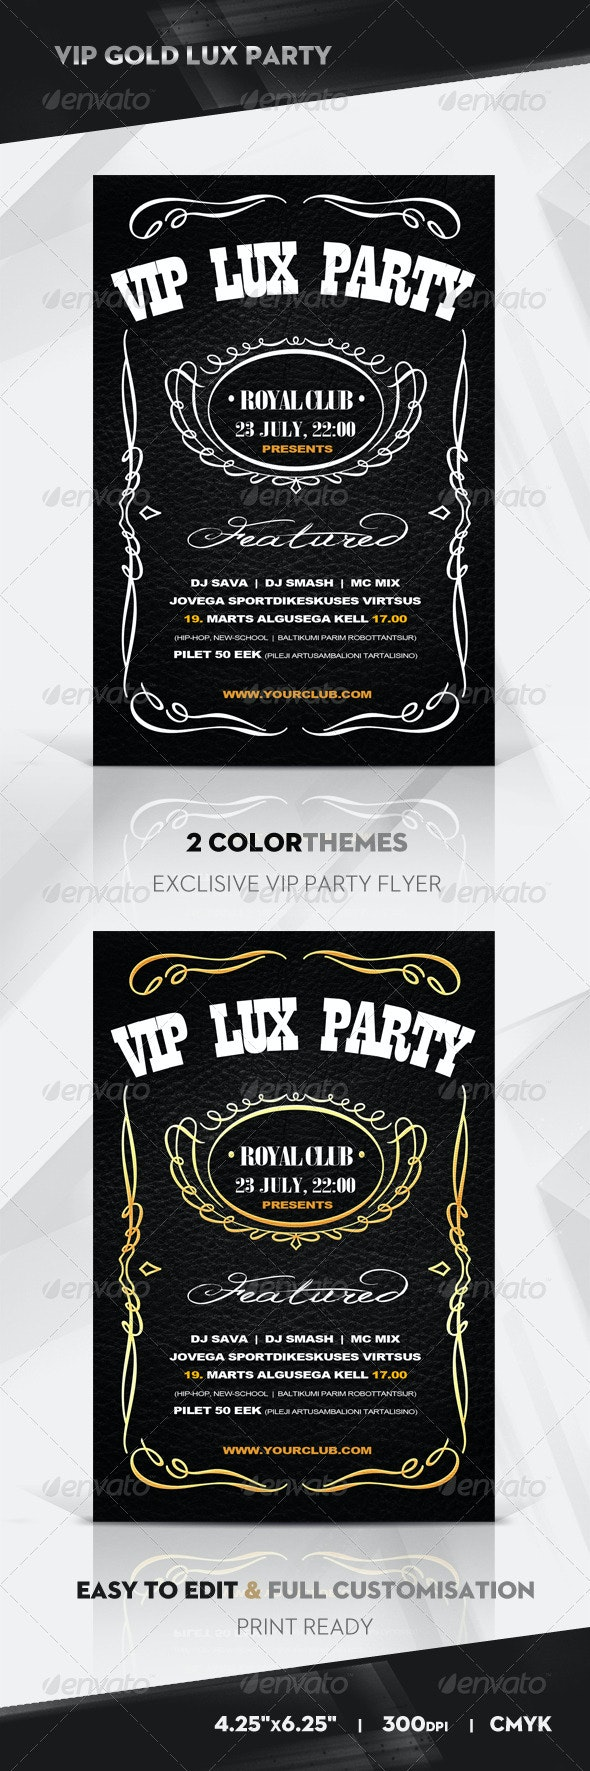 VIP LUX Flyer / Poster - Clubs & Parties Events